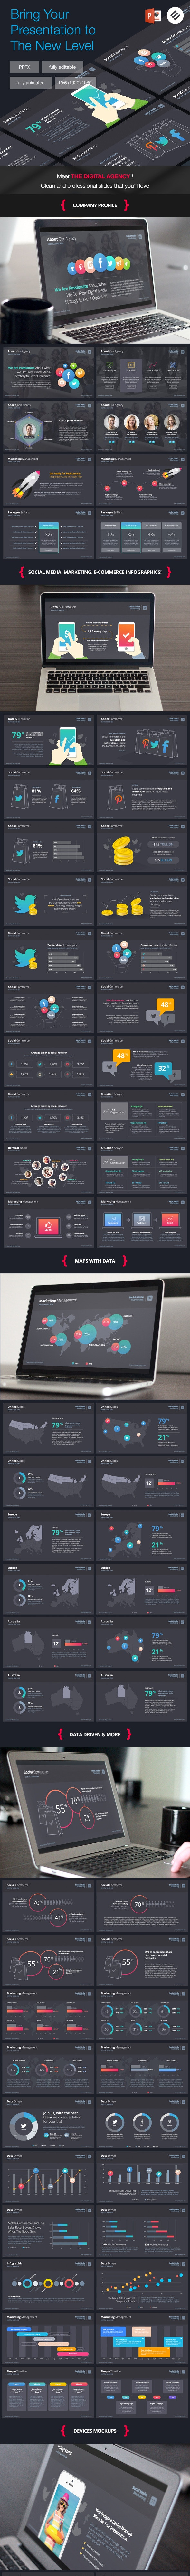 The Digital Agency - Powerpoint Template - PowerPoint Templates Presentation Templates